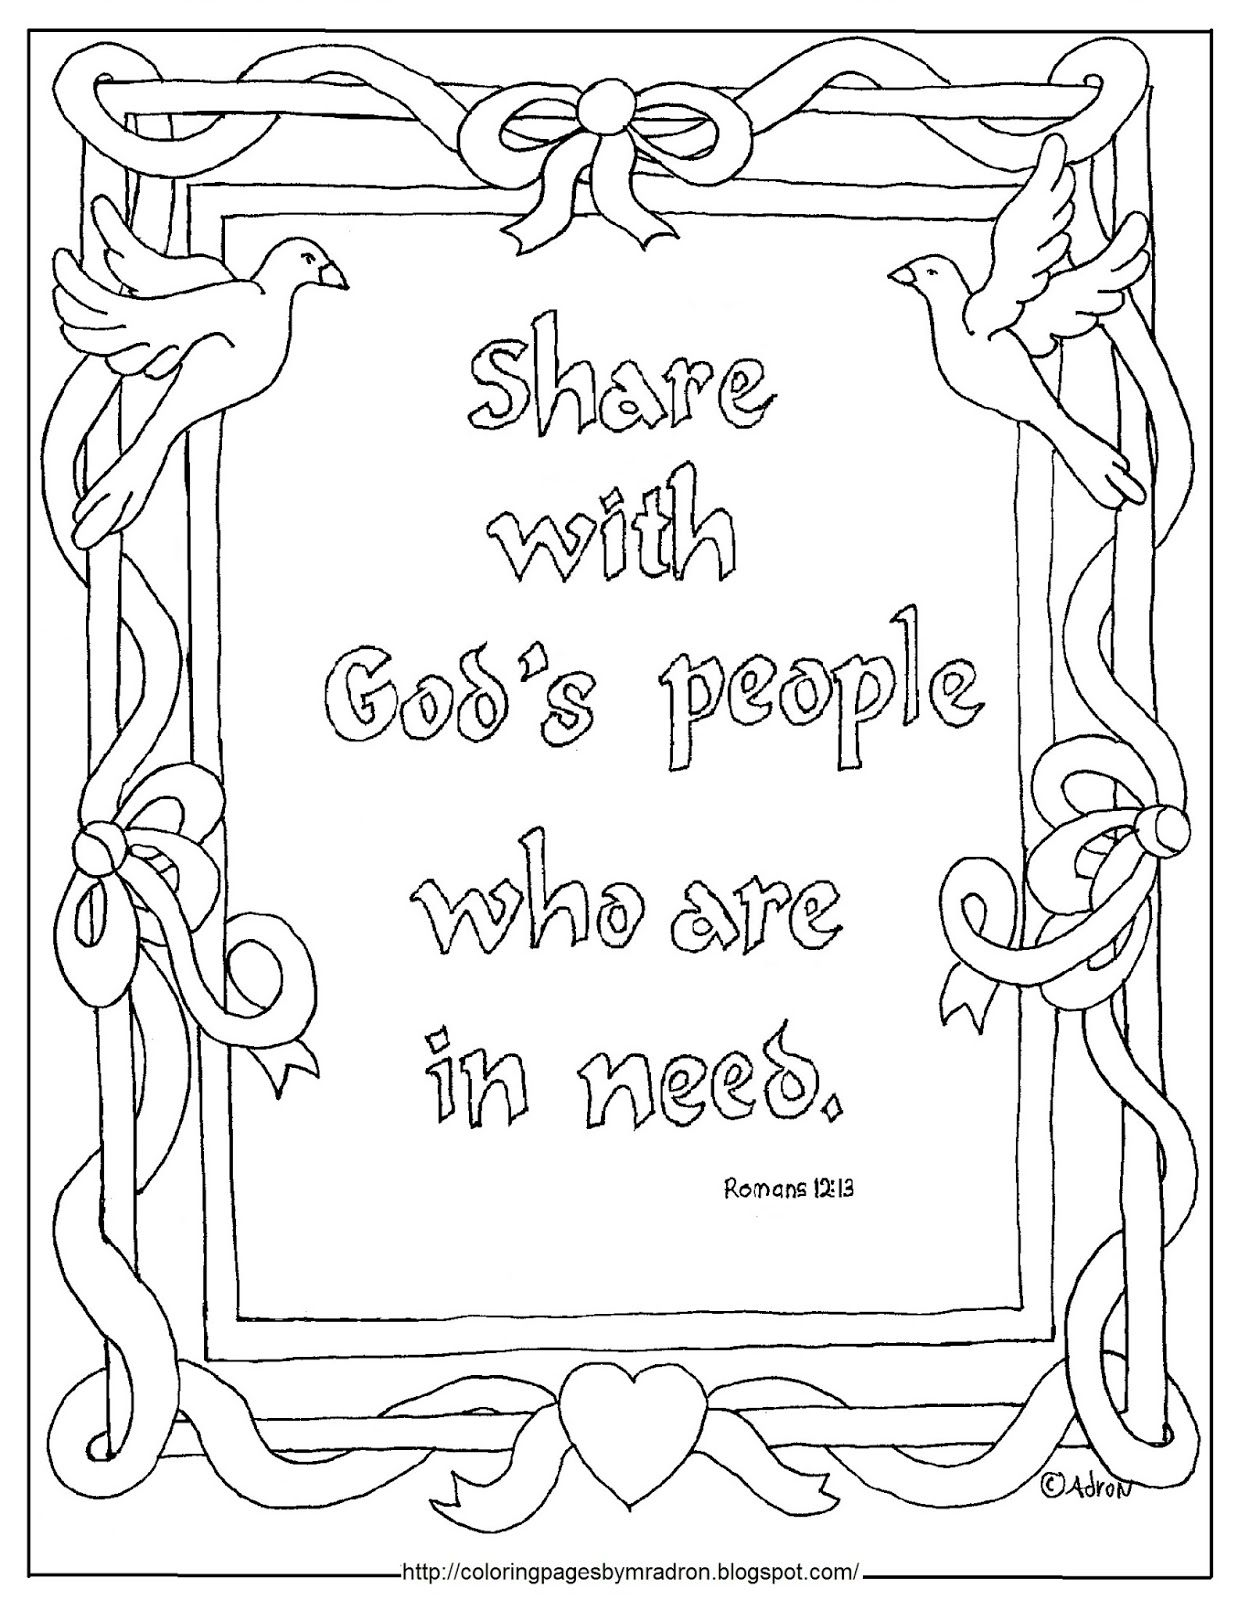 free coloring pages sharing | Pin by MaryAnn Youngblood on Coloring books | Coloring ...